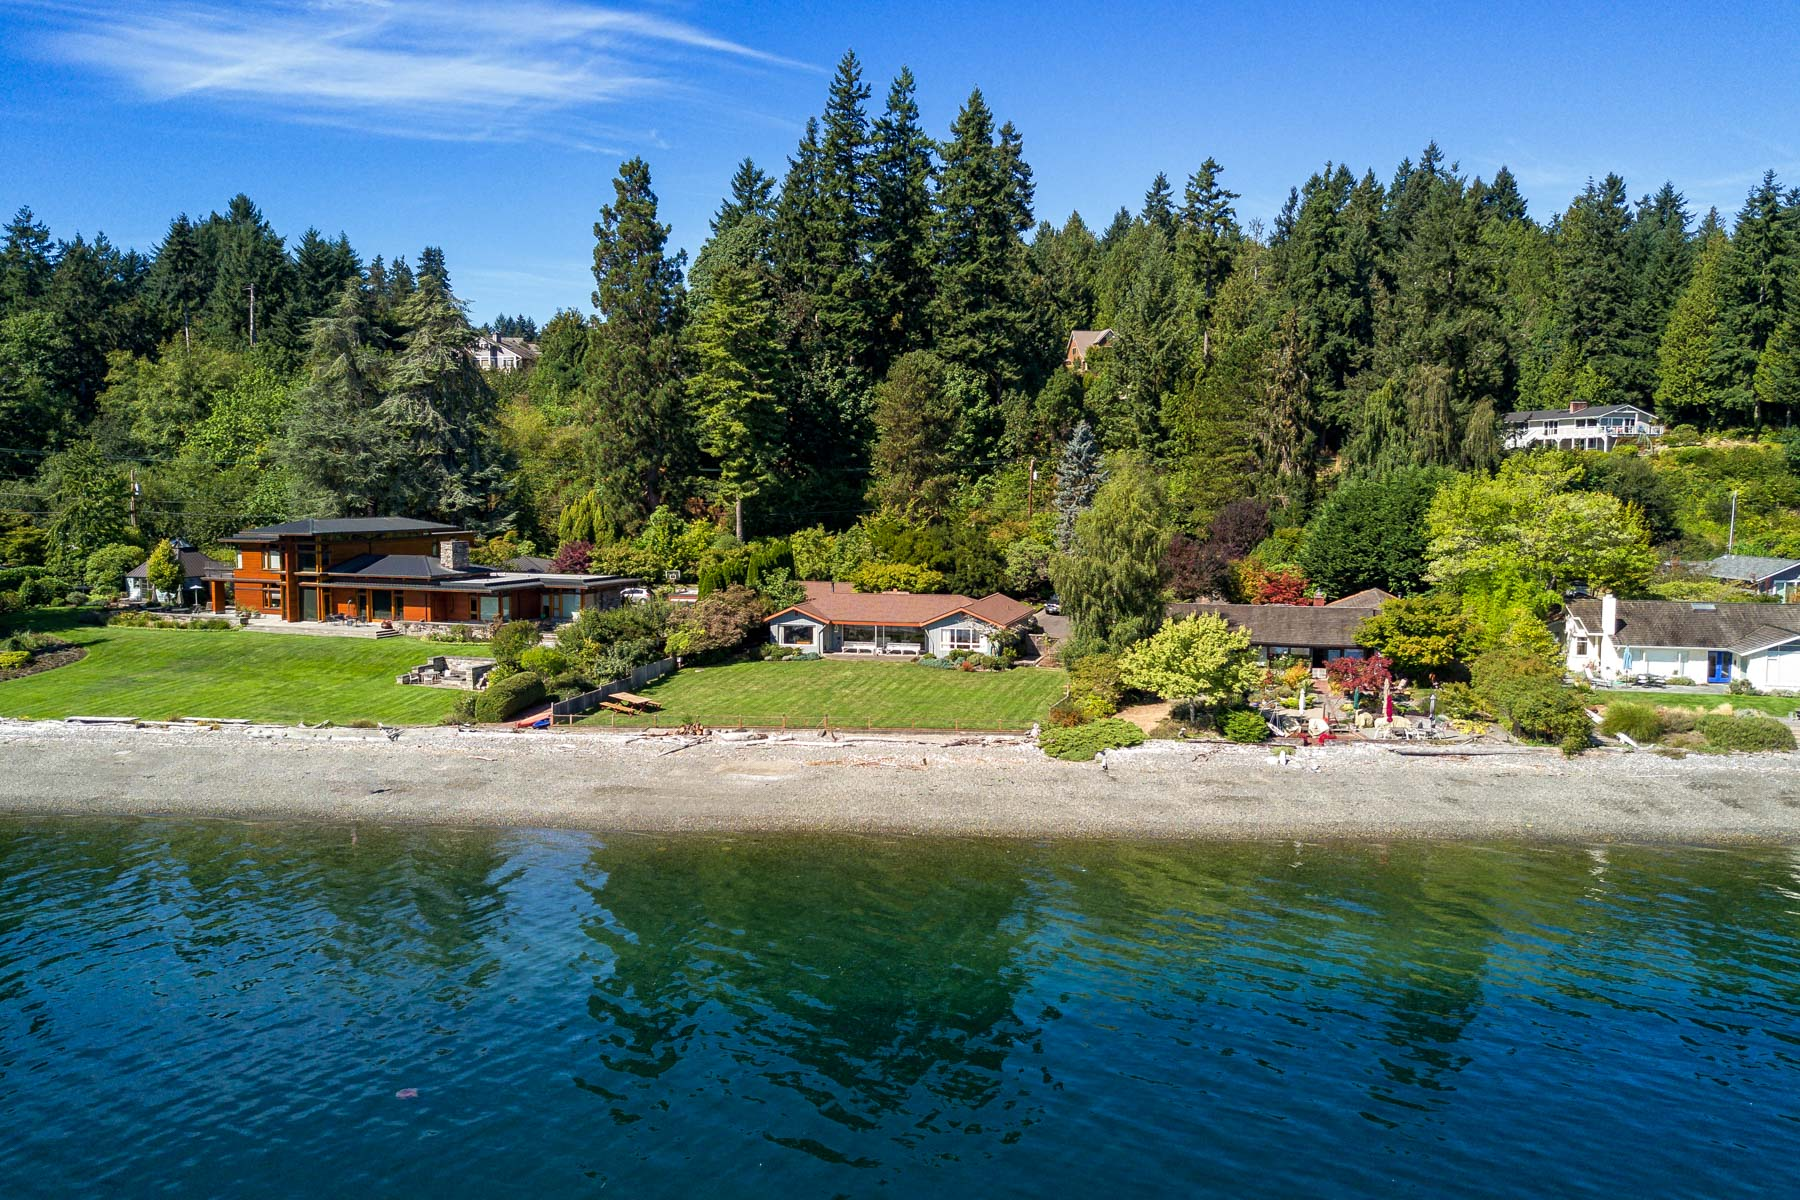 Casa Unifamiliar por un Venta en Island Living on Point White 3708 Point White Drive NE Bainbridge Island, Washington 98110 Estados Unidos